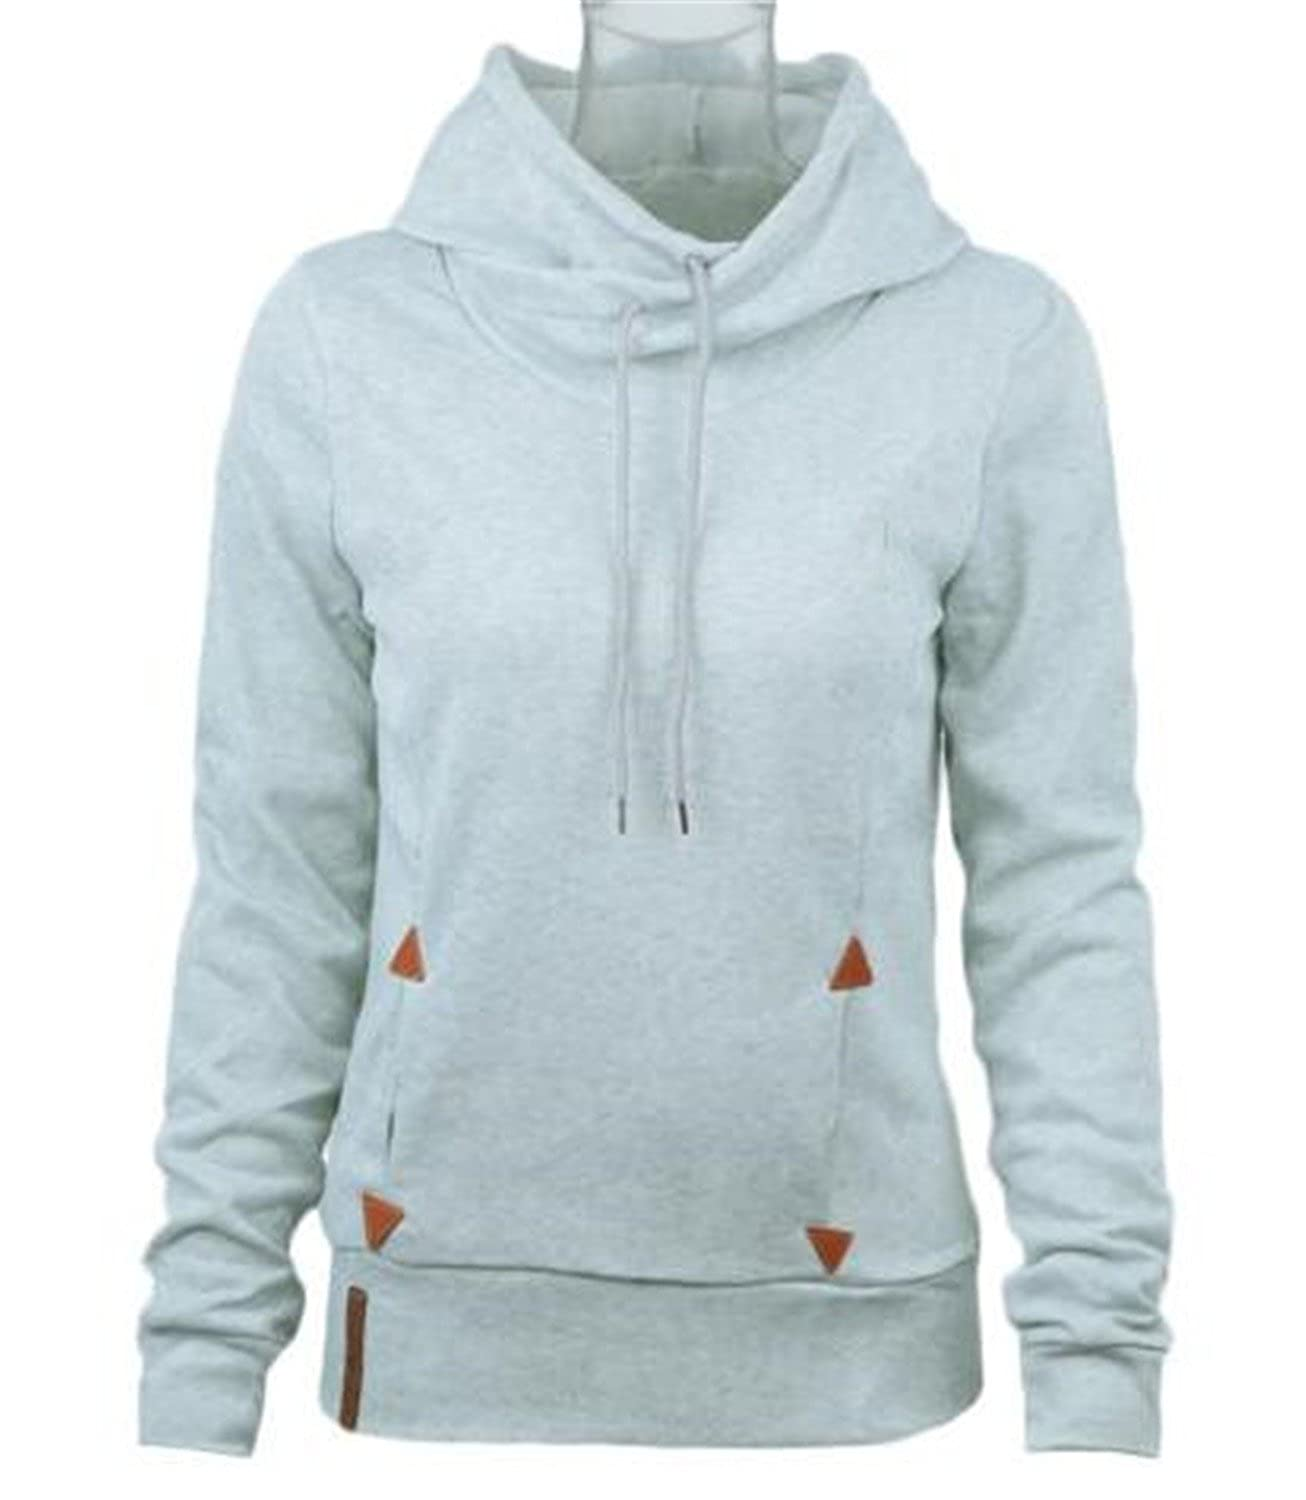 Henraly Women Hoodies Self-tie Pockets Pullover Hooded Loose Tops Hoodie For Women Sudaderas Mujer at Amazon Womens Clothing store: